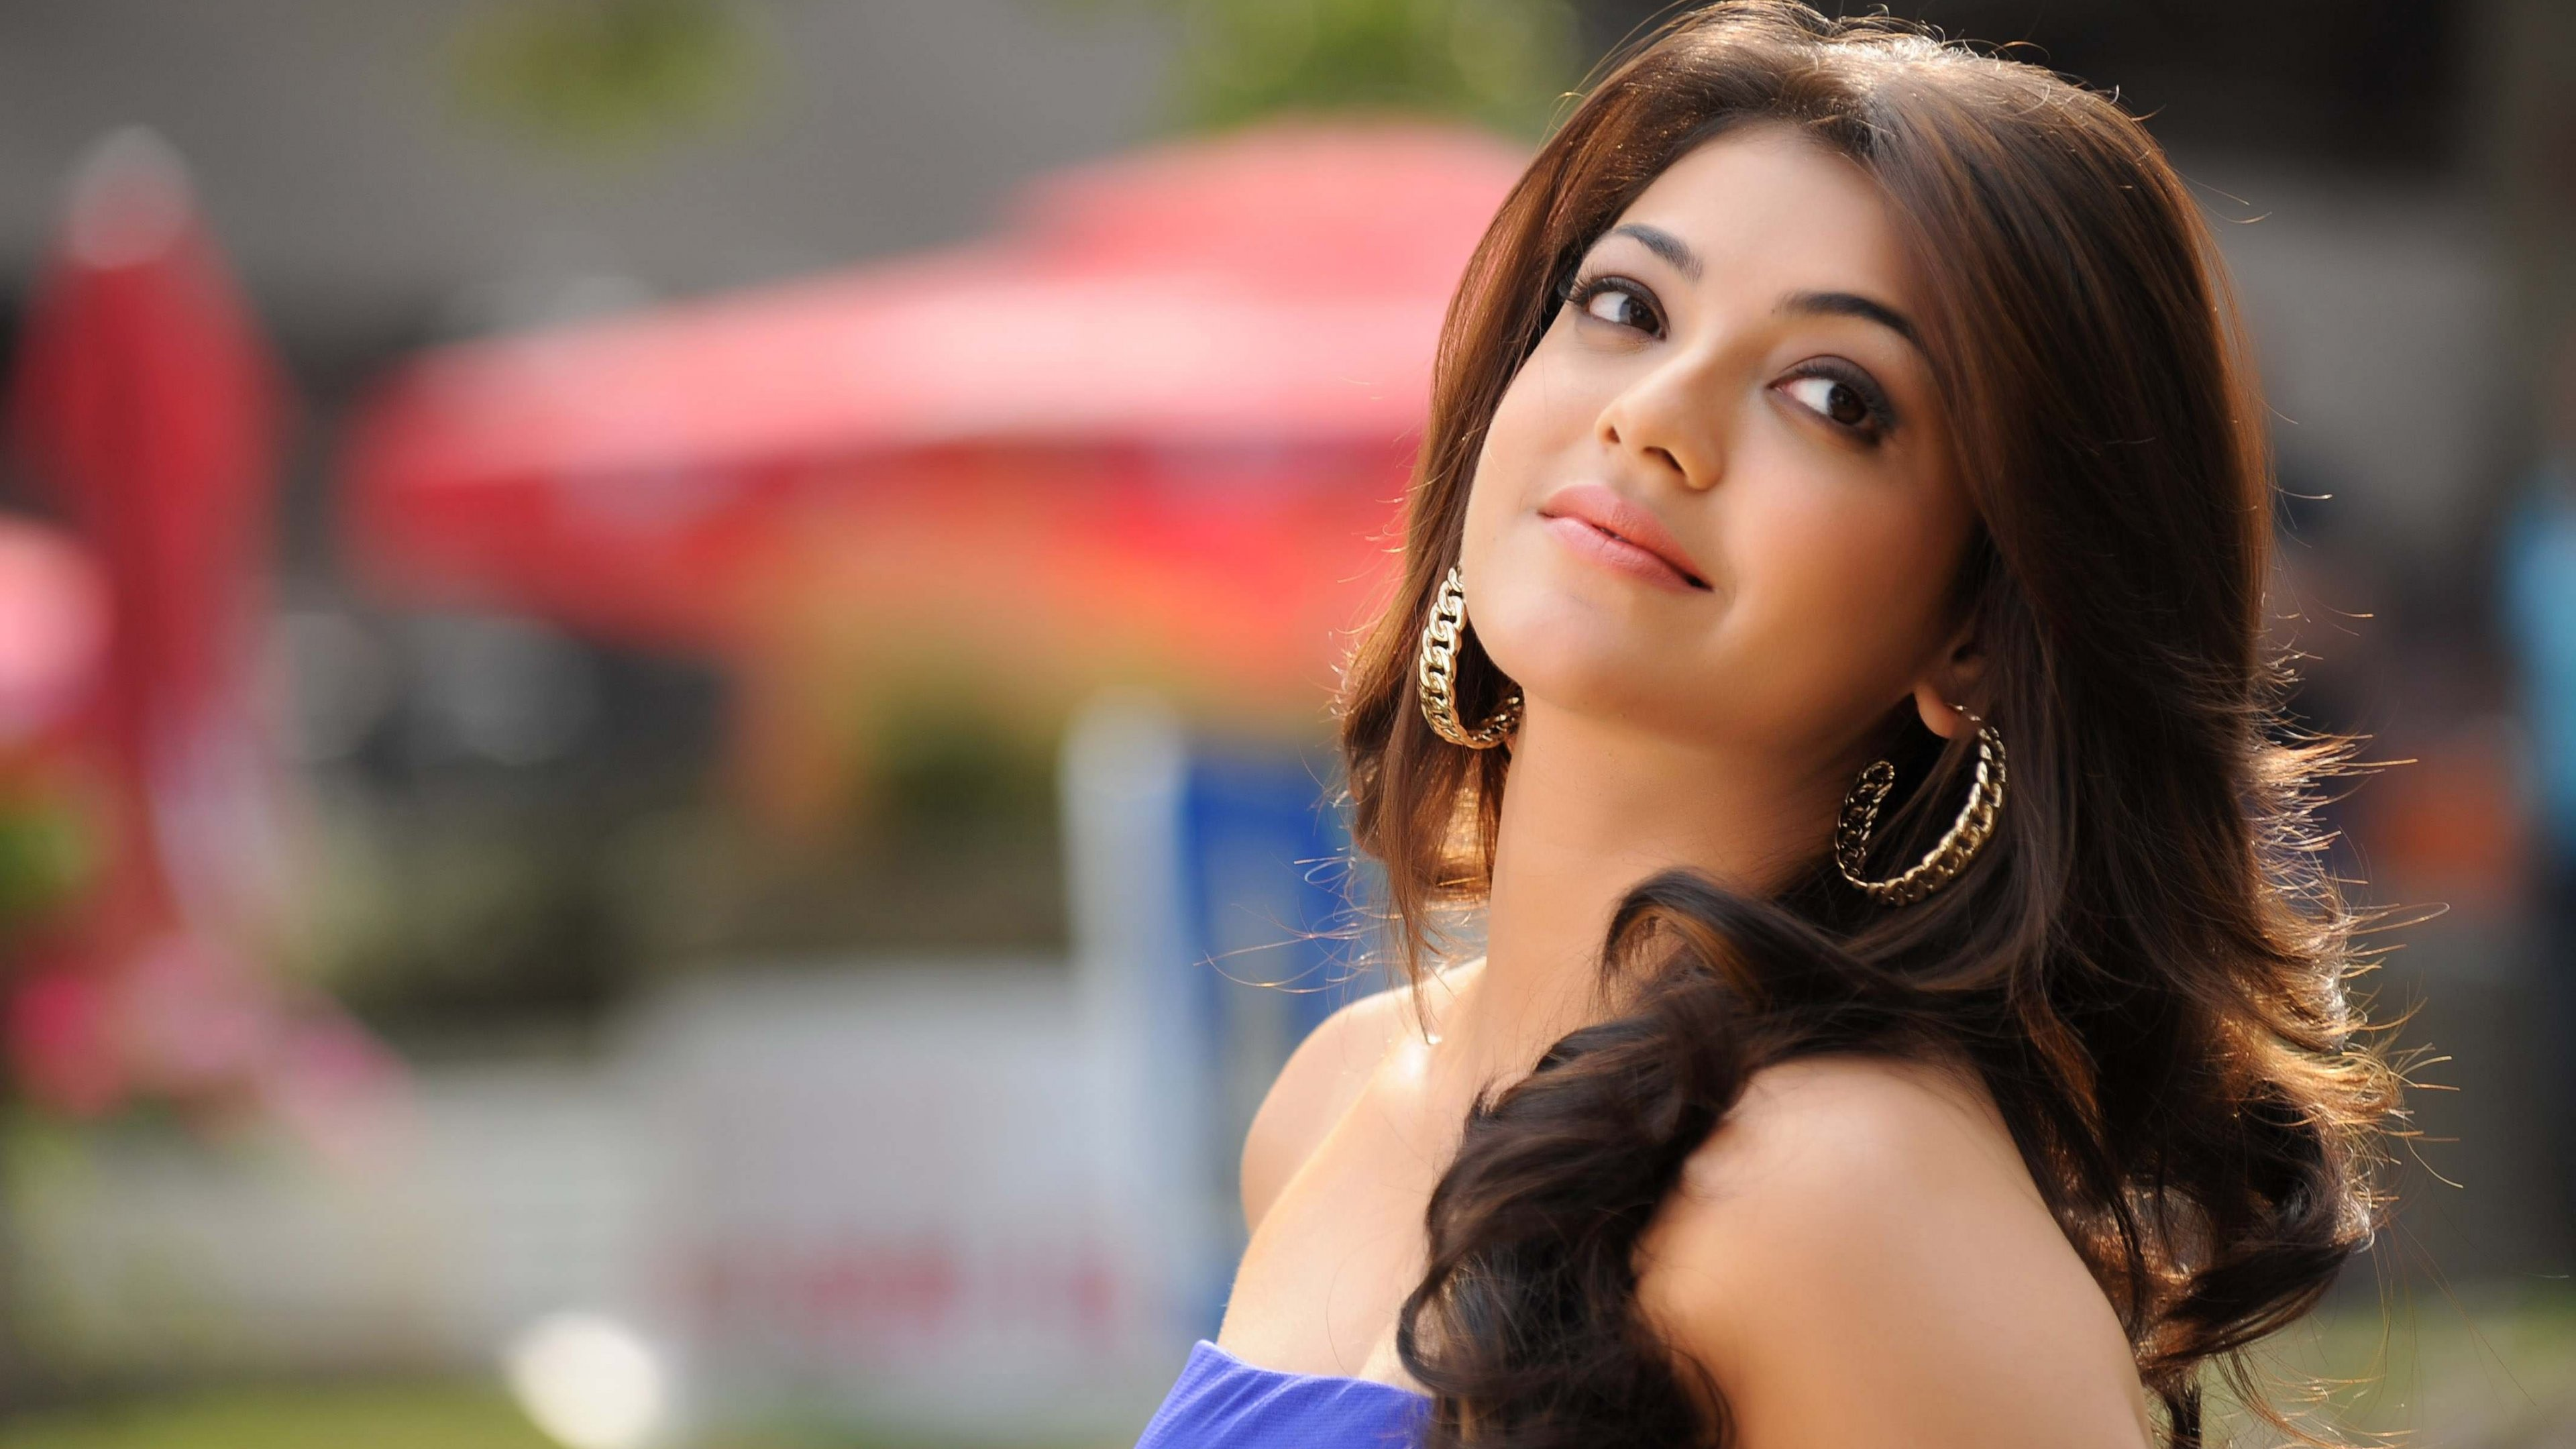 kajal agarwal 4k ultra hd wallpaper and background image | 3840x2160